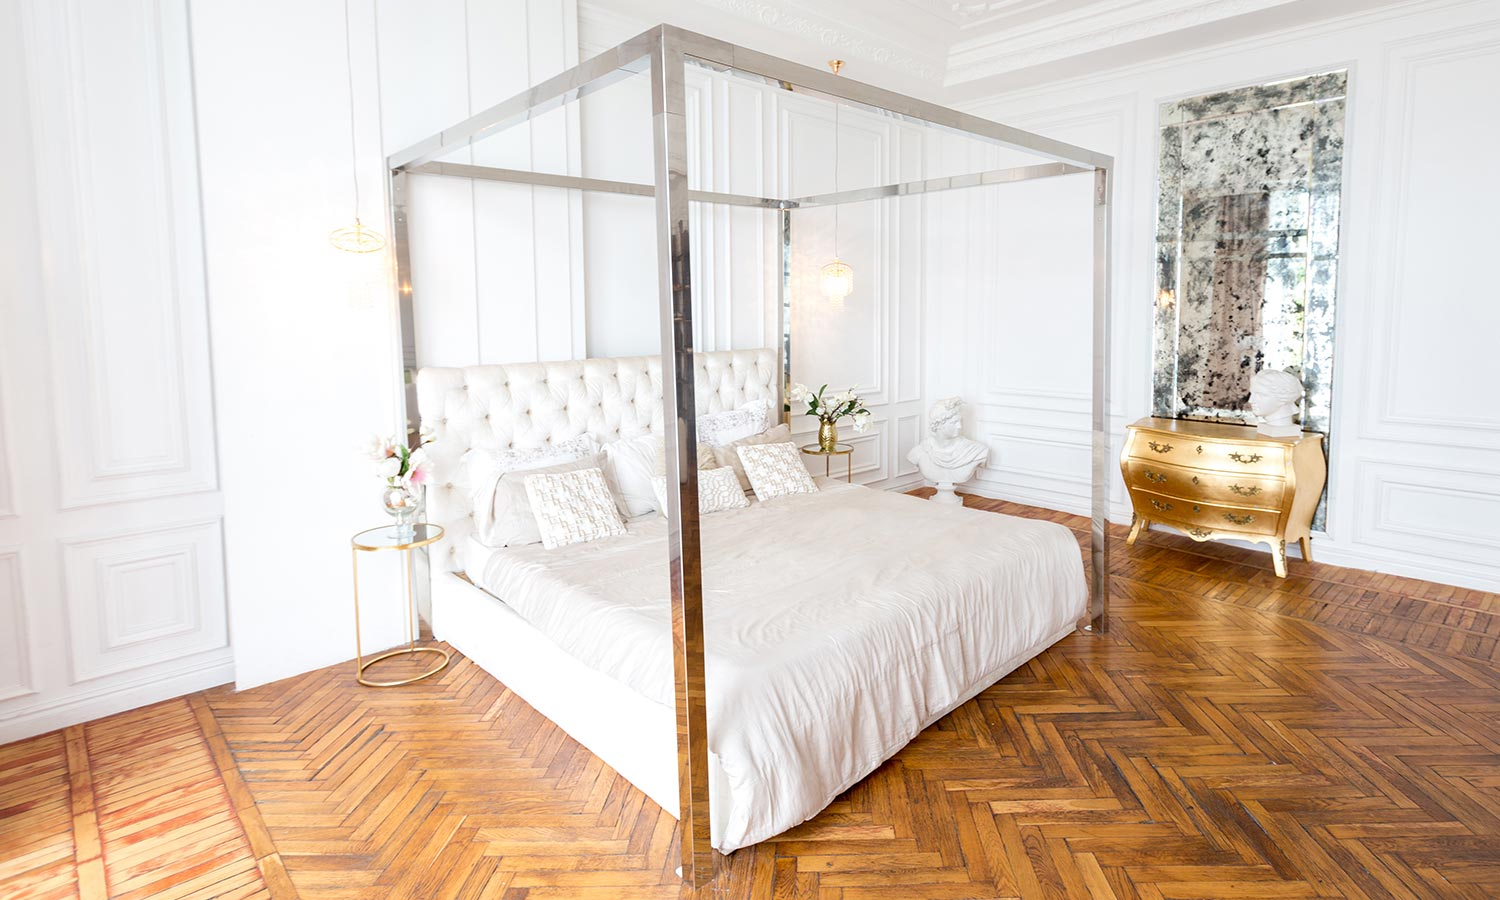 A canopy bed with a shiny metallic frame and no fabric hanging from it.